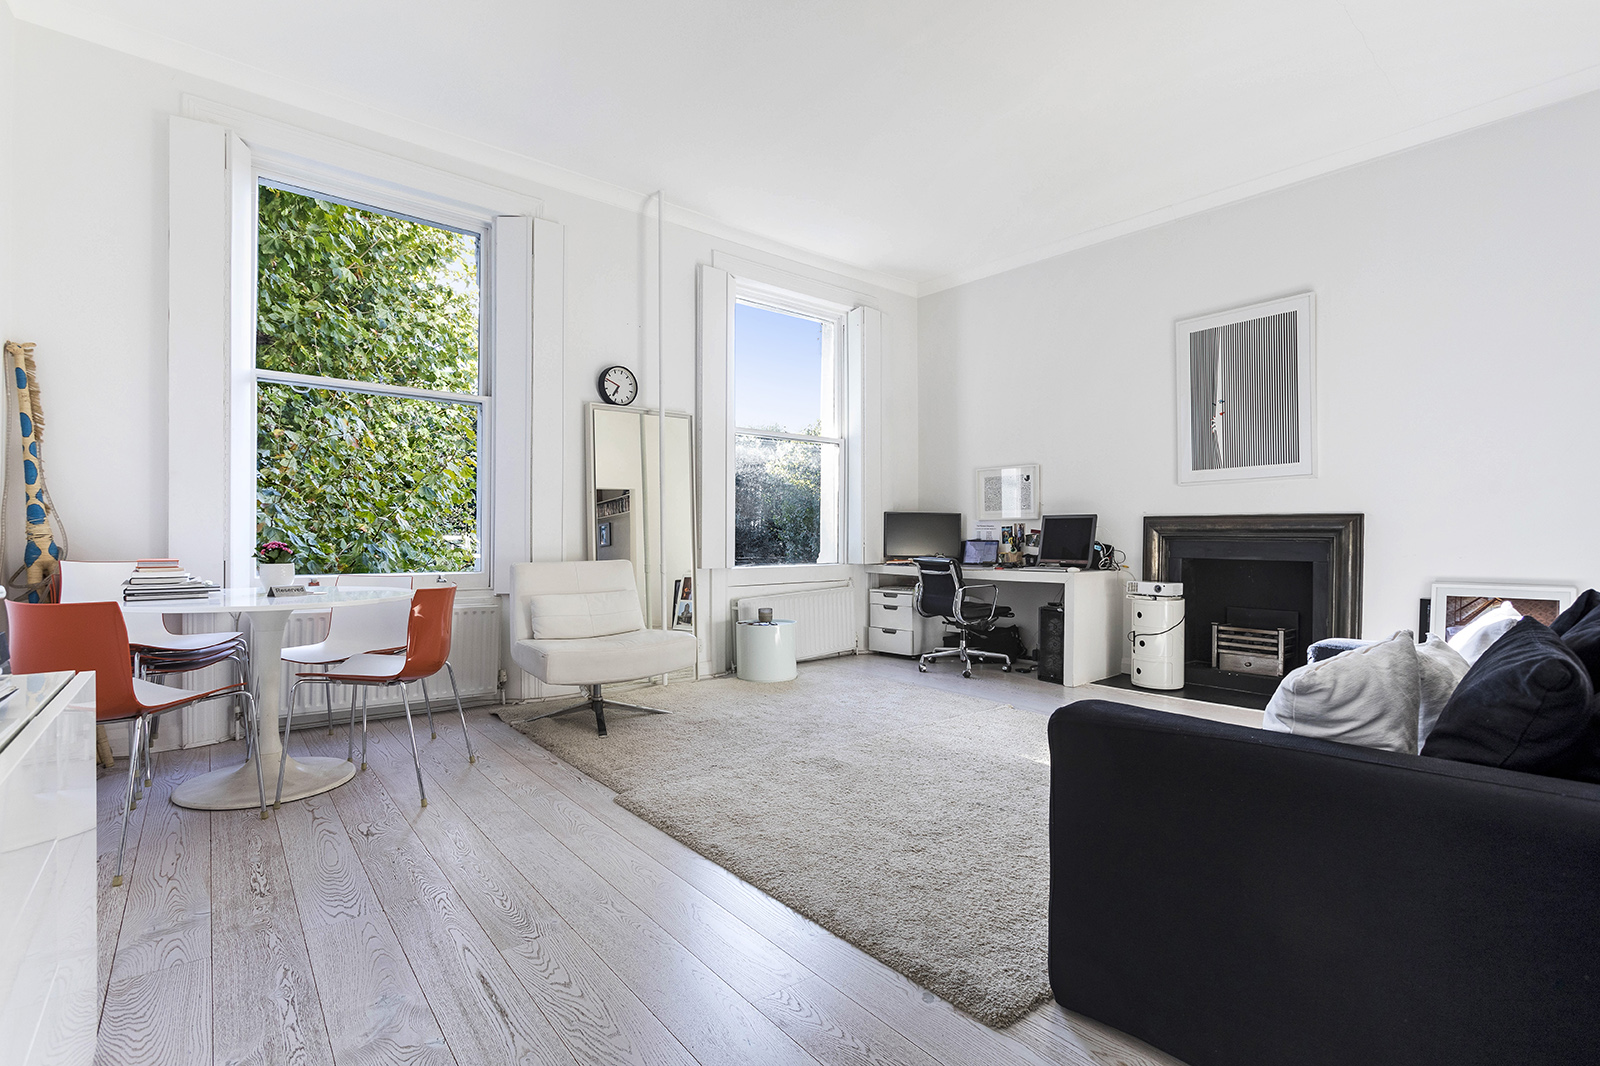 Well presented one bedroom apartment located in the fabulous Notting Hill